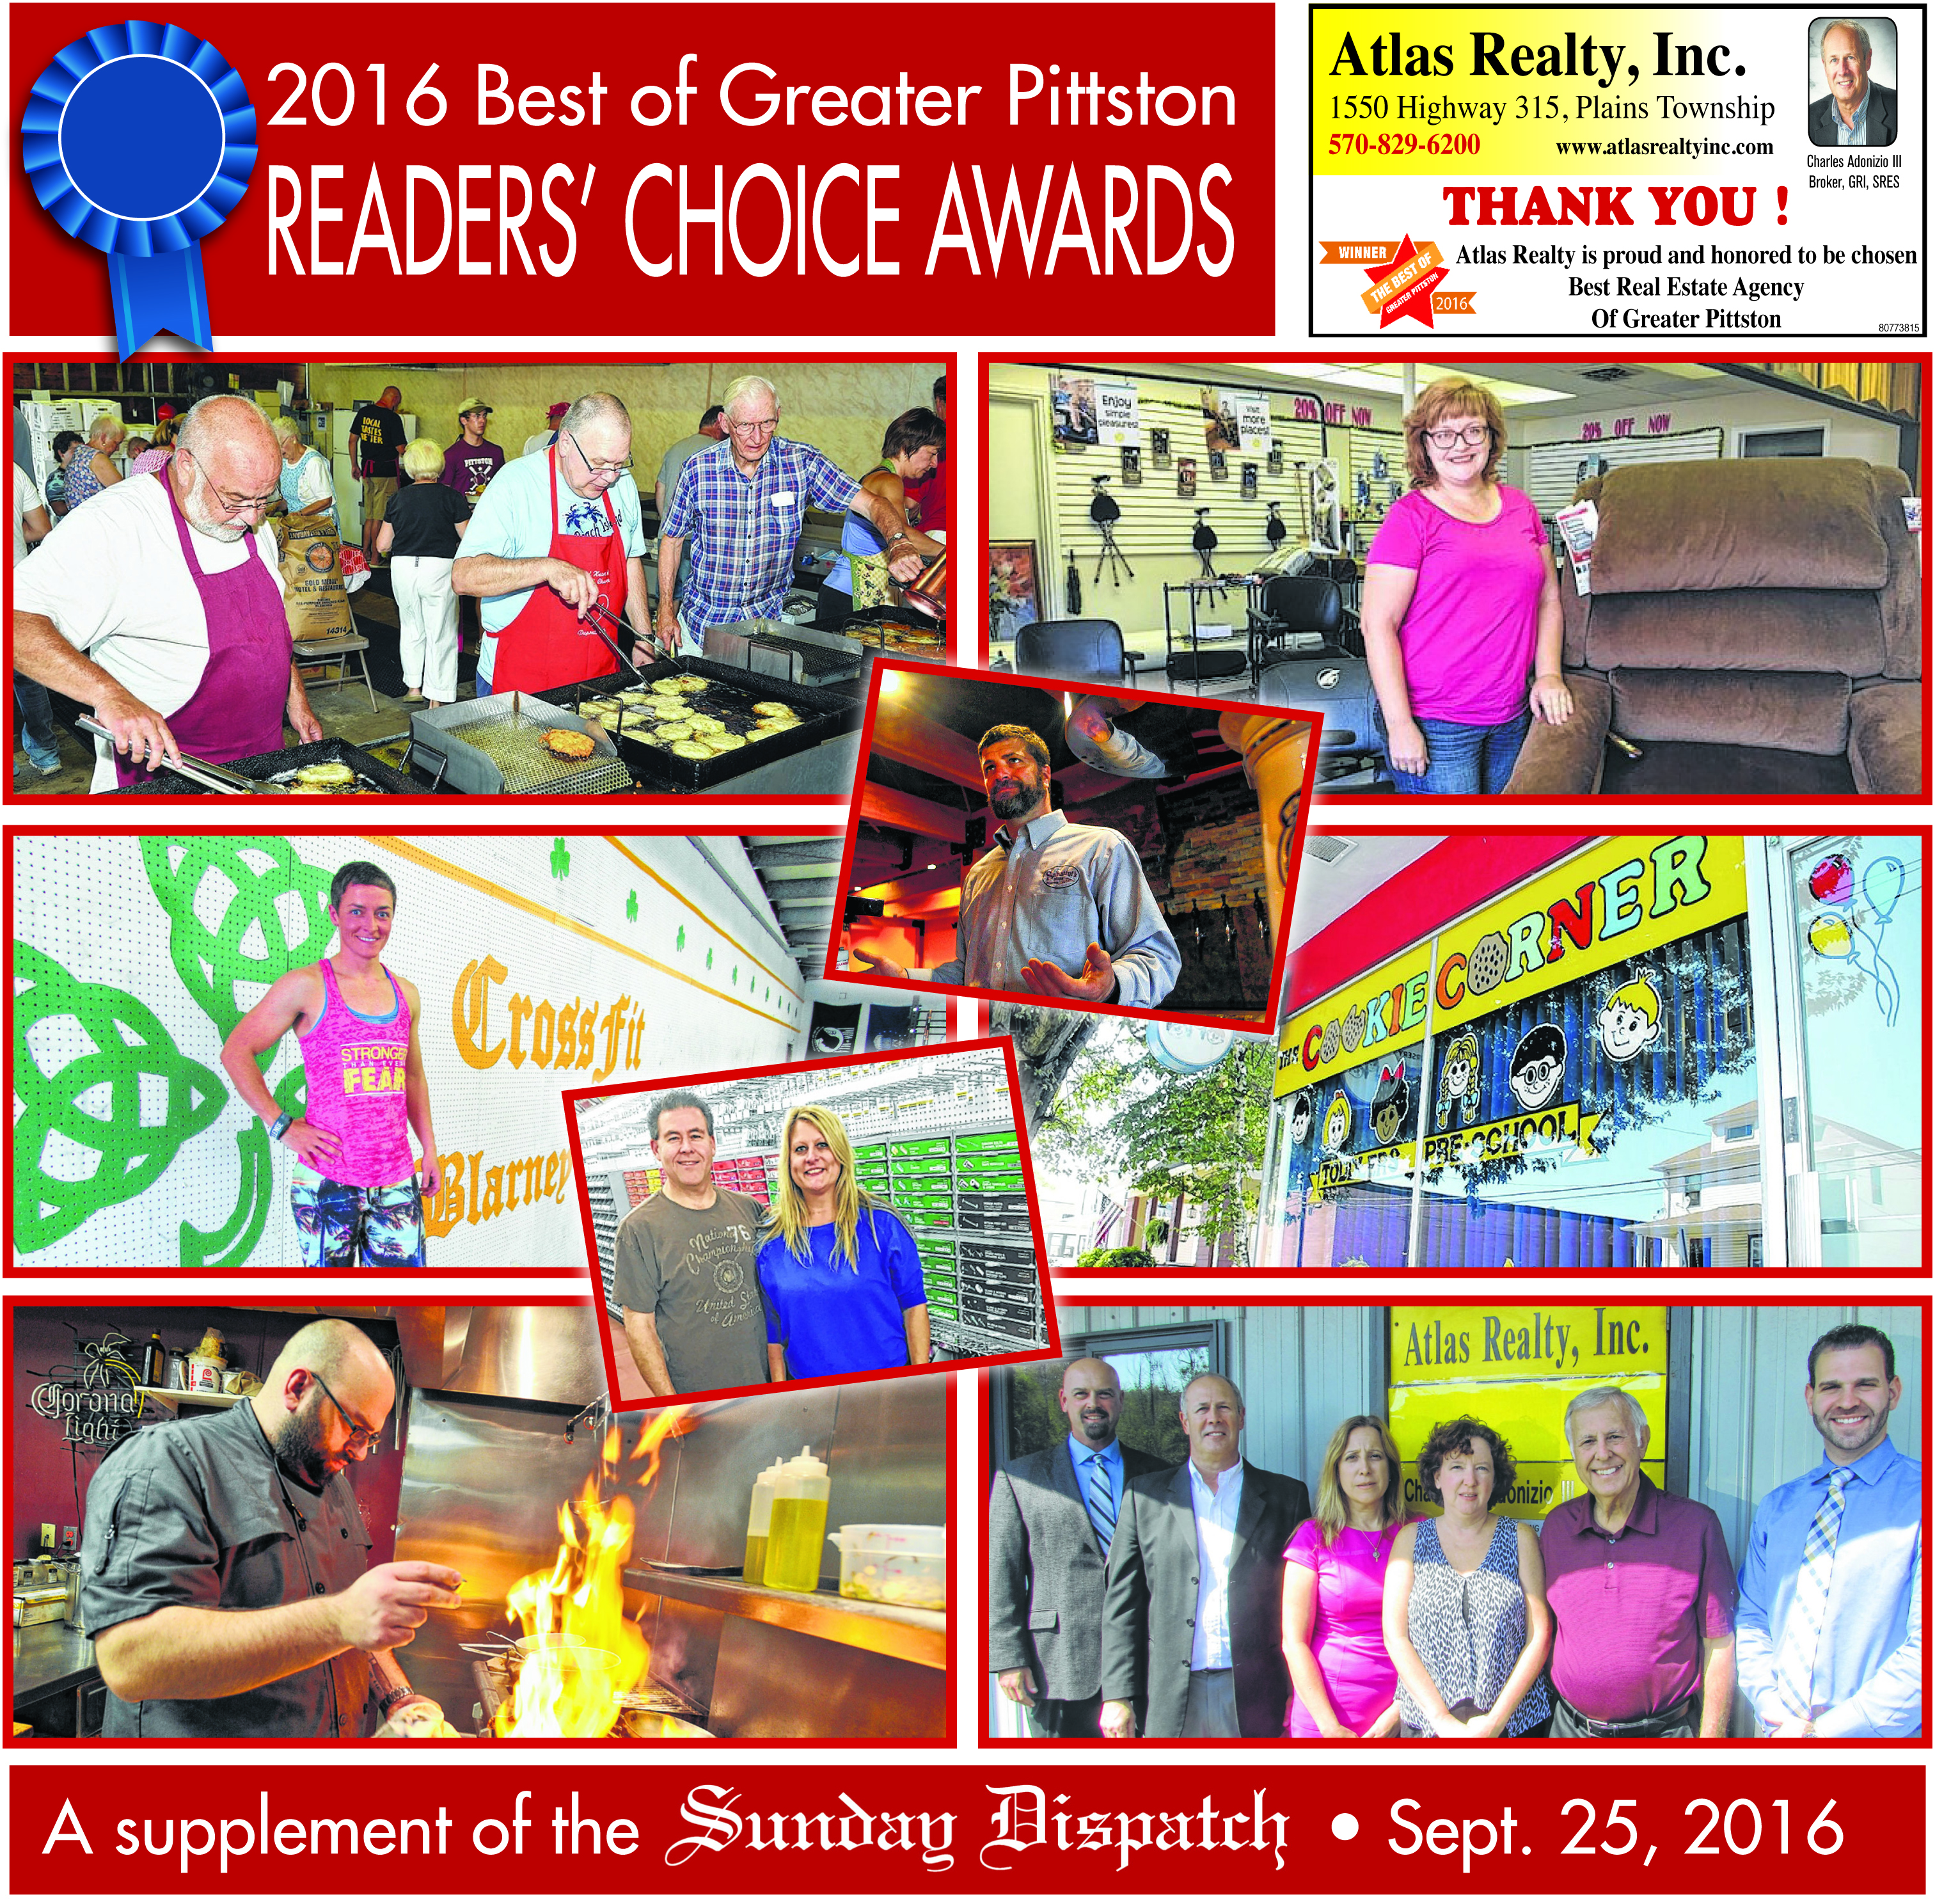 2016 Best of Greater Pittston Readers' Choice Awards